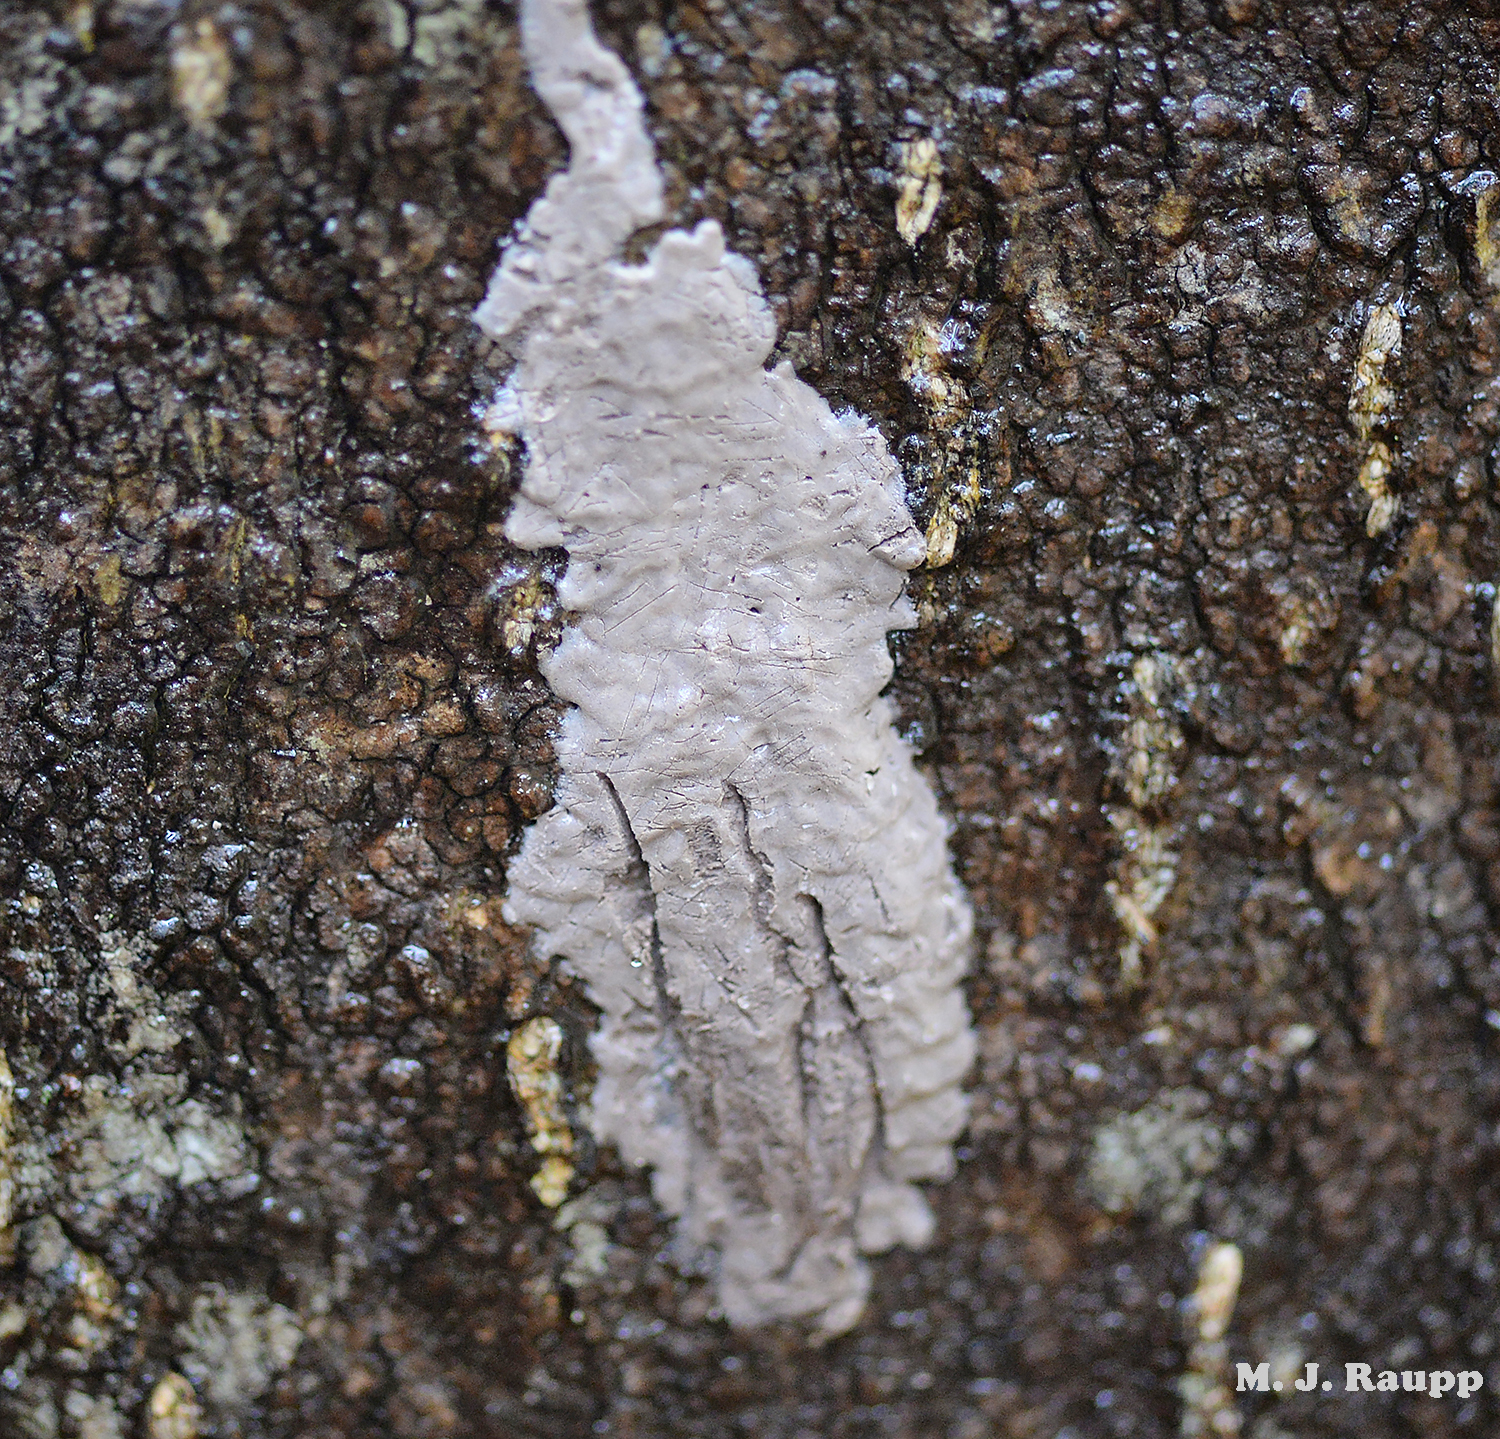 - It's easy to see how the non-descript egg masses of the spotted lanternfly like this one on the bole of a tree sneak past human detection and move about the world. If you discover an egg mass, nymphs, or adult spotted lanternflies, report these to your University Extension Service or State Department of Agriculture.